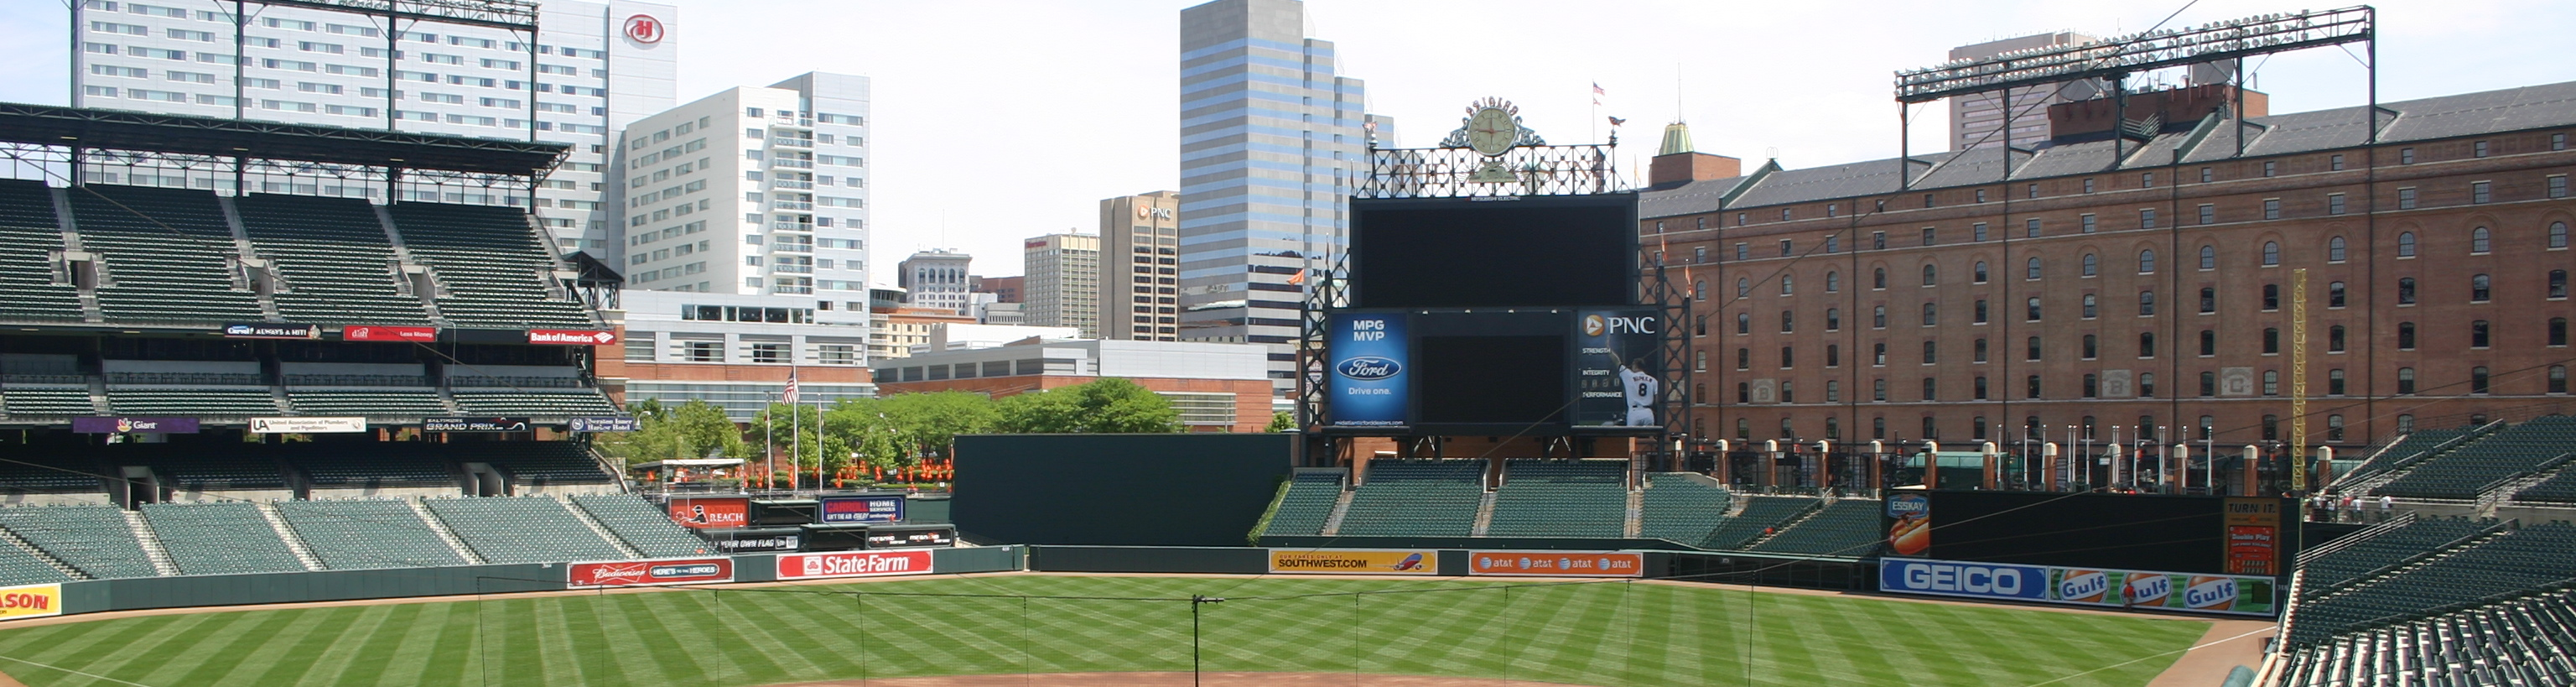 Oriole Park,Camden Yards,east coast baseball tours,baseball trips